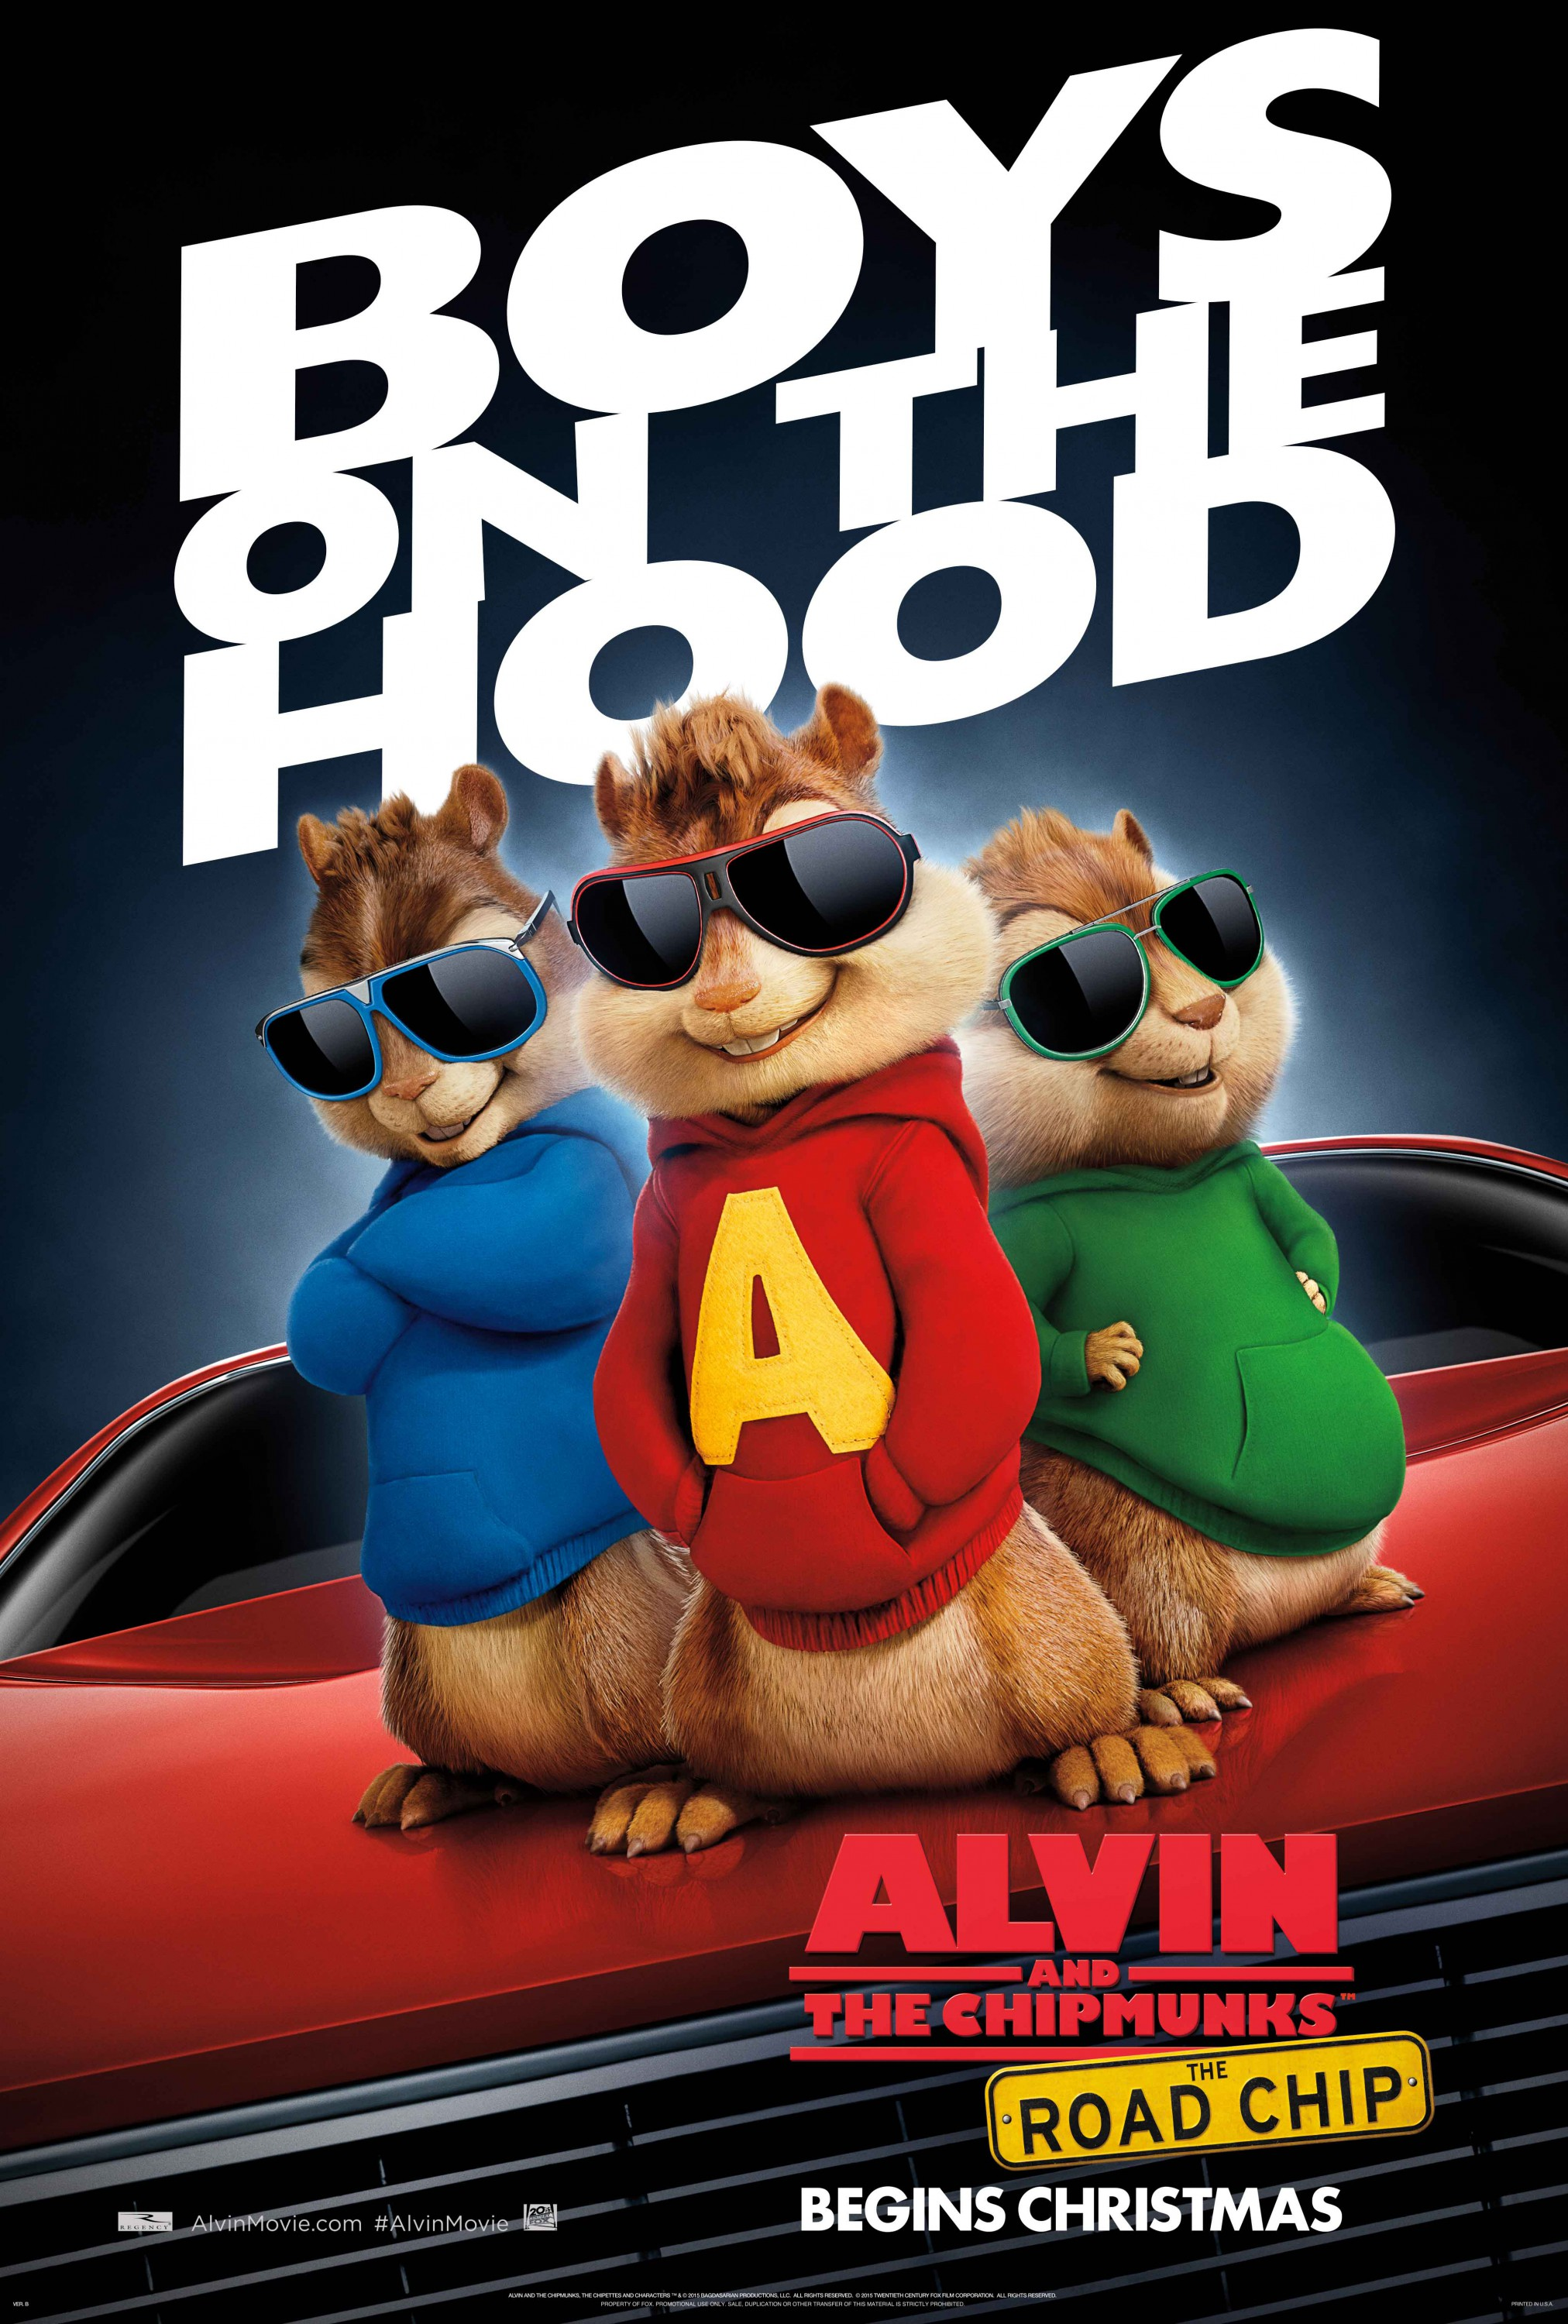 Alvin and the Chipmunks The Road Chip-24Setembro2015 (1)